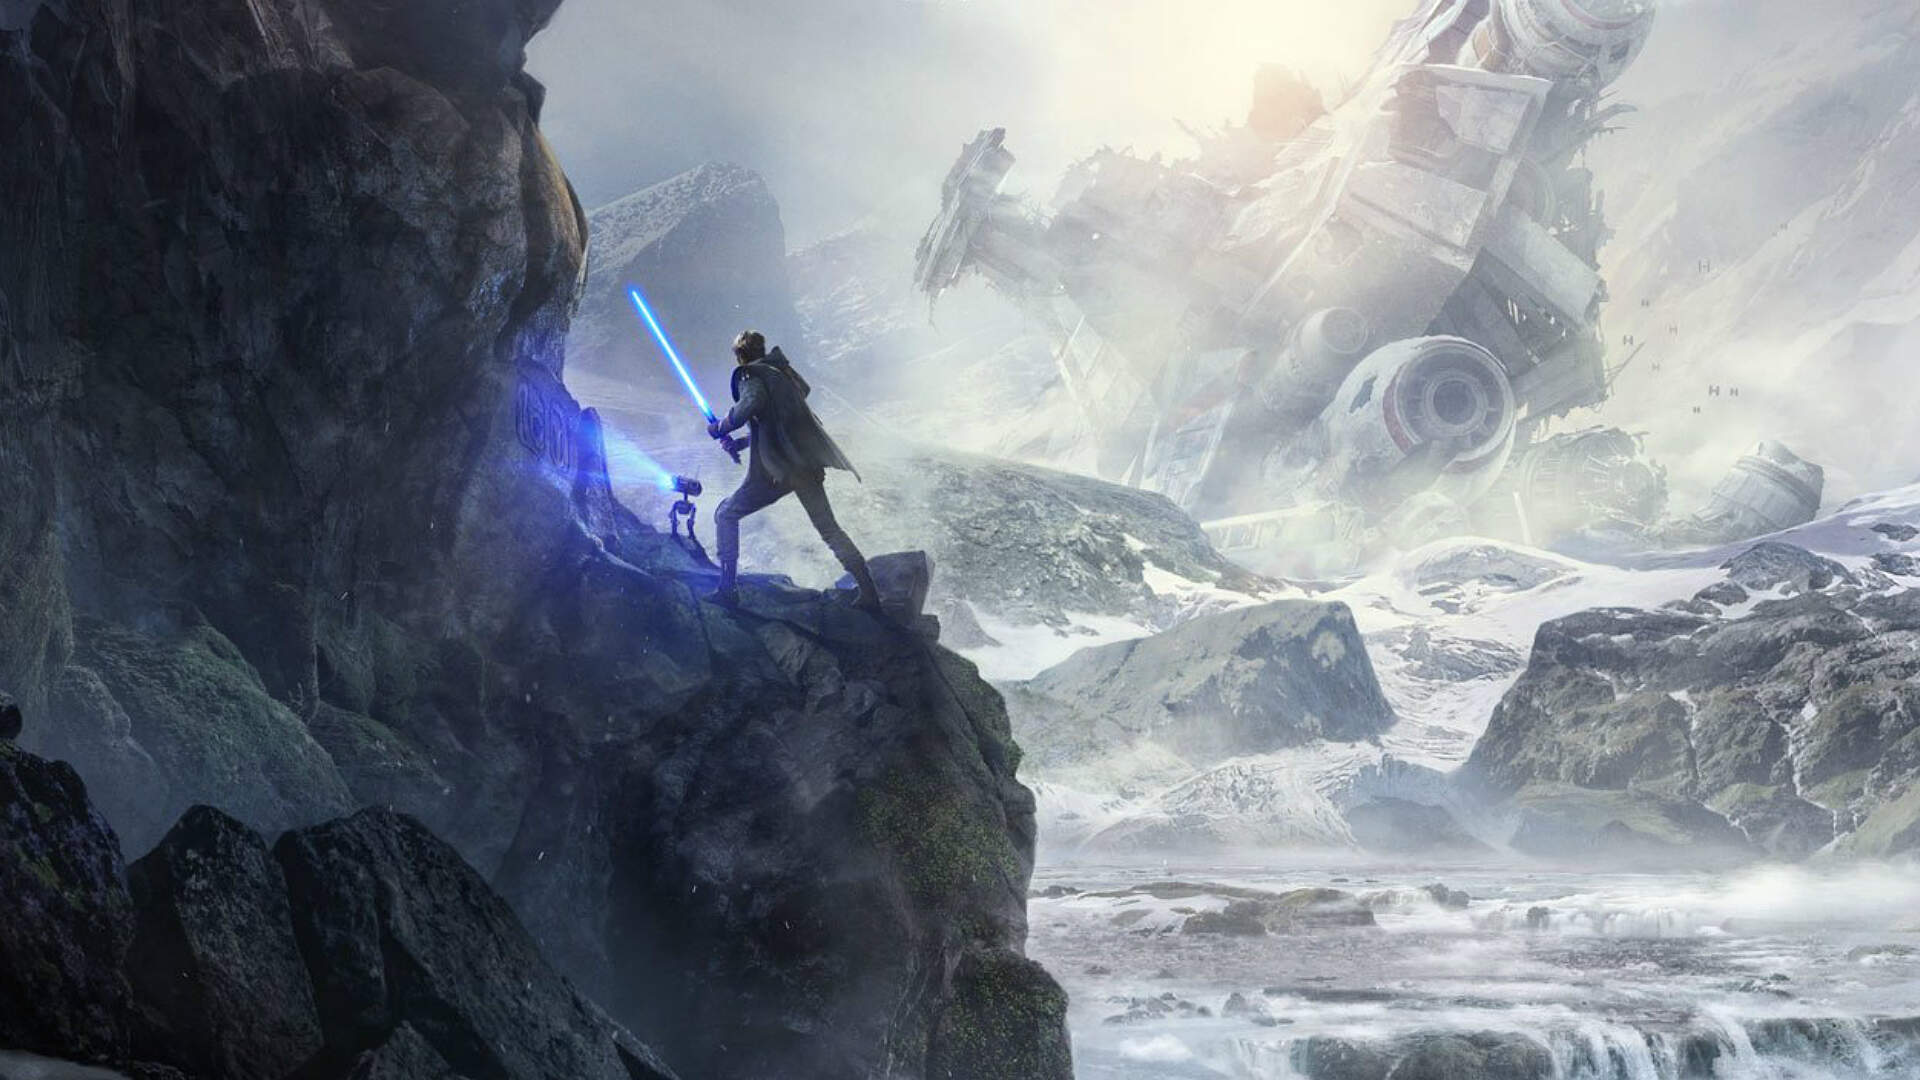 EA Confirms Star Wars Jedi: Fallen Order Will Not Have a Season Pass